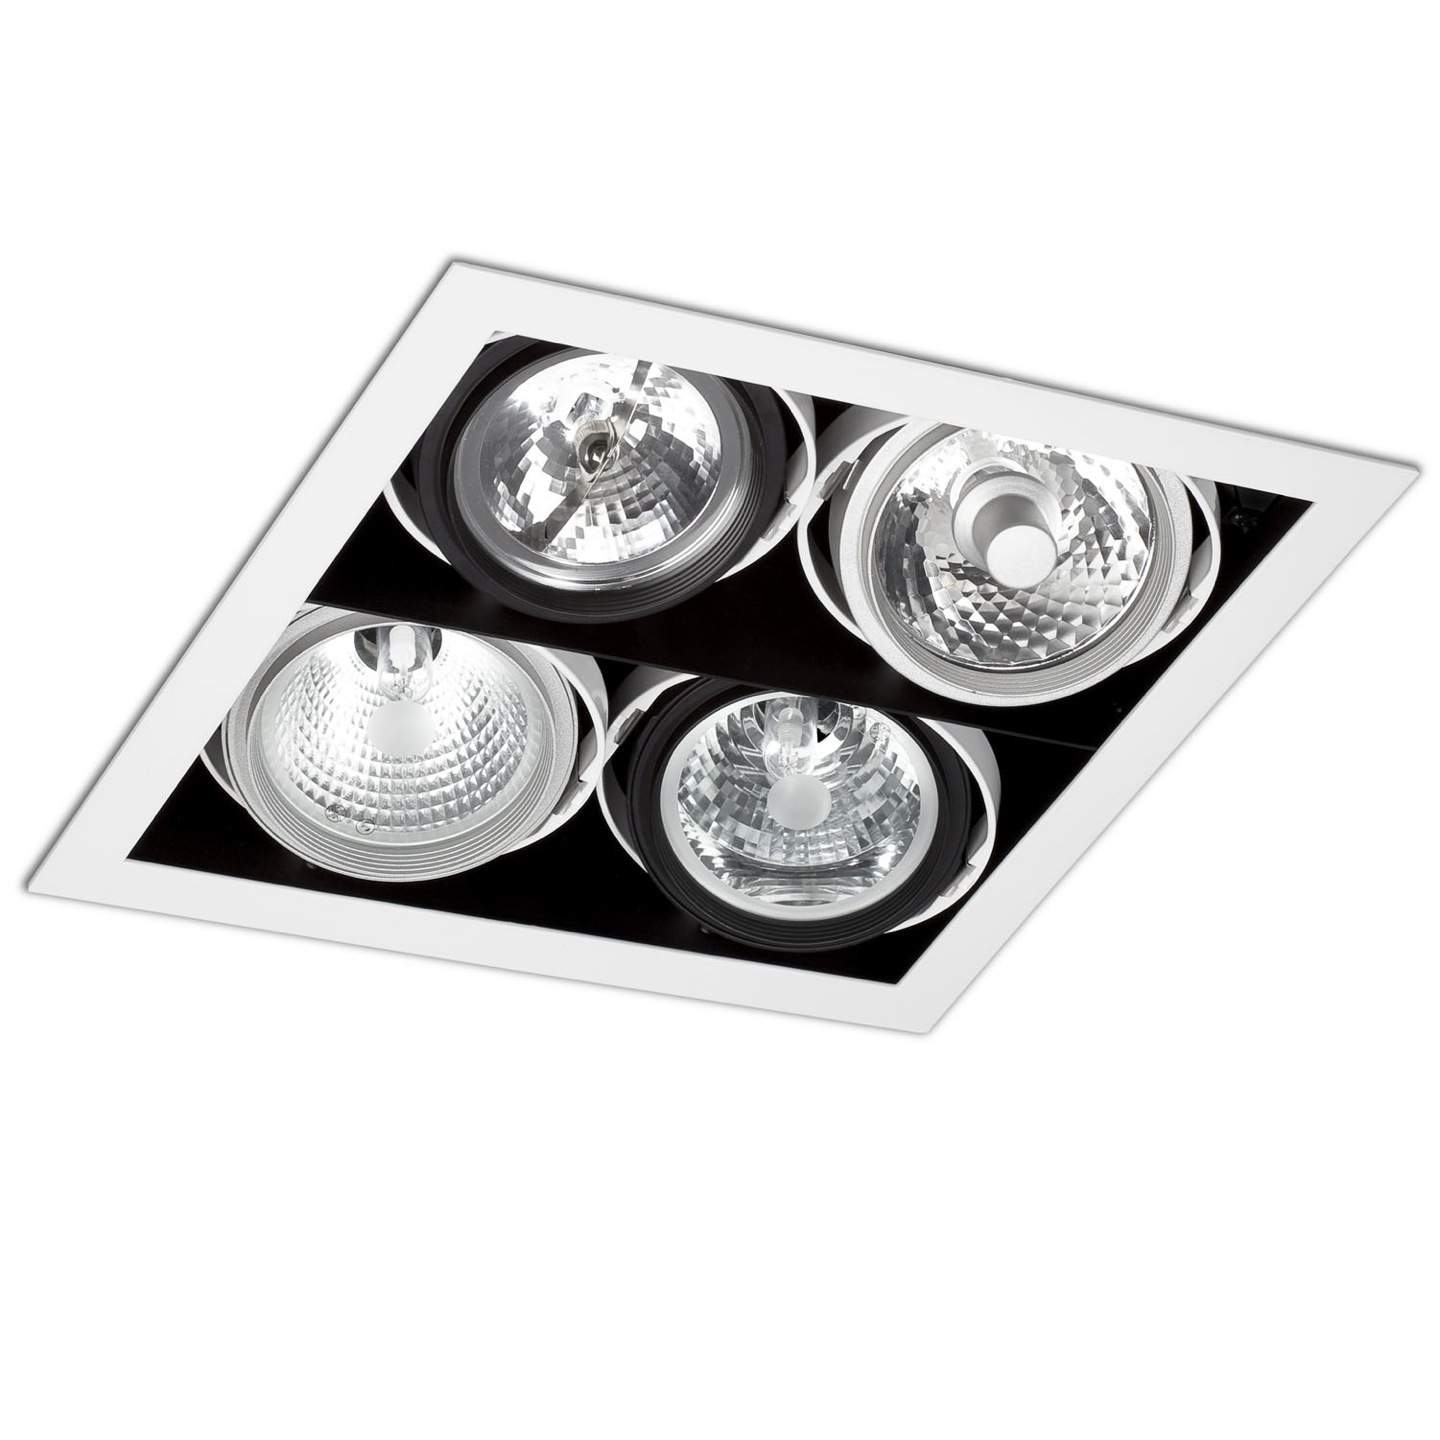 Morris Recessed Ceiling (body without PortaLámpara s) 4xElements Black